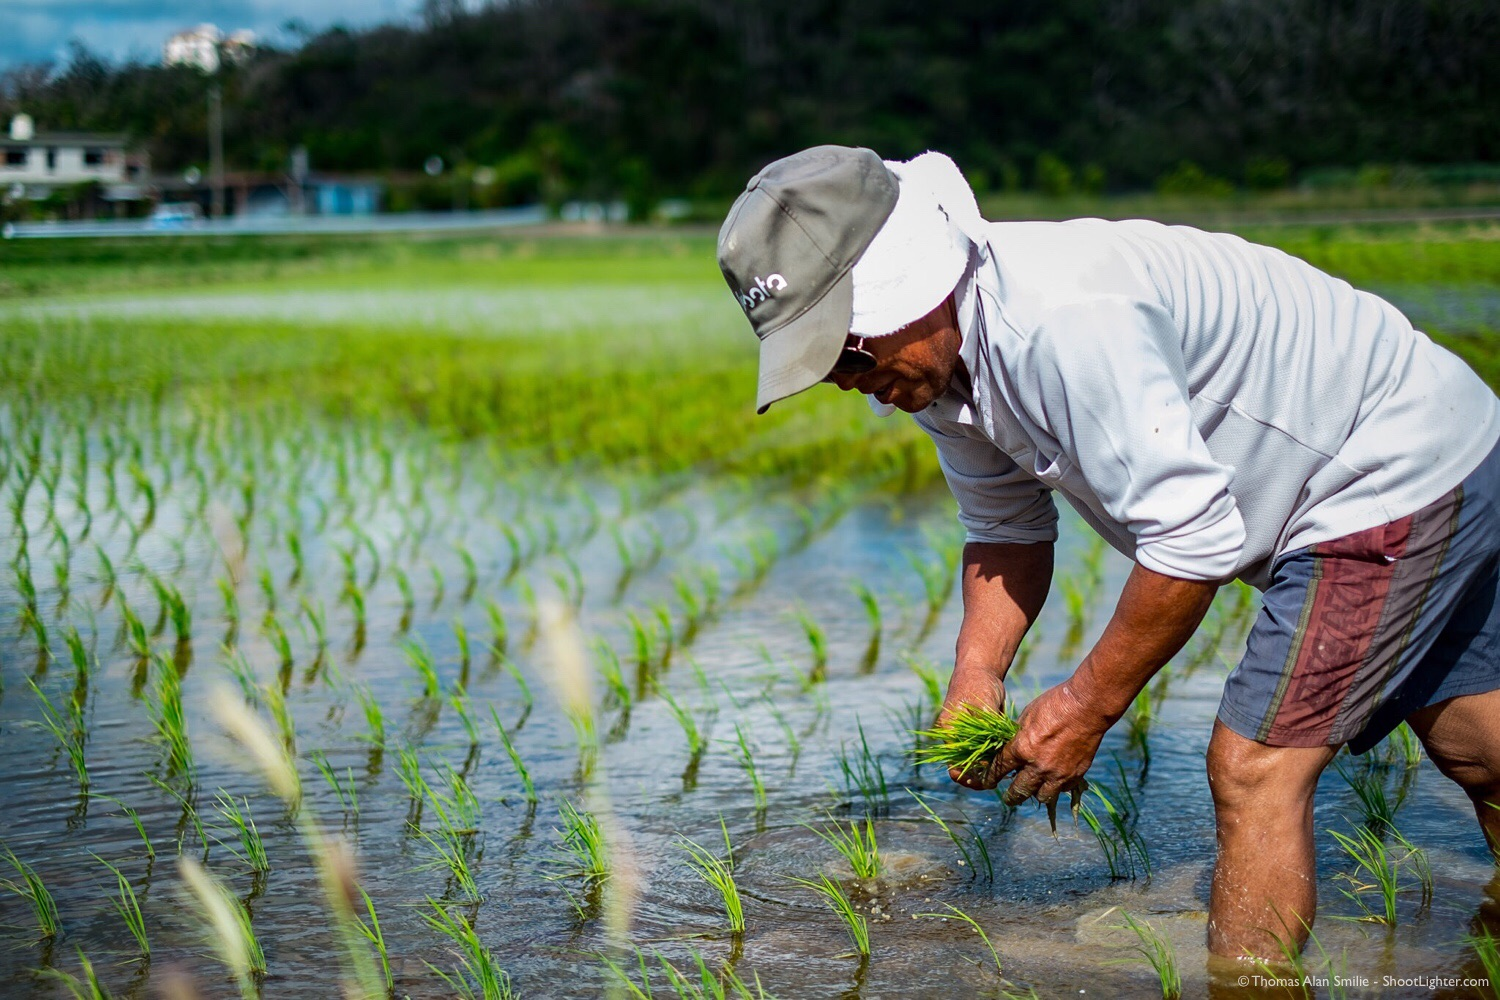 Rice farmer planting rice in Onna, Okinawa, Japan. Fujifilm X-Pro1, 35mm f/1.4 @ f/1.4, 1/4000 sec, iso 200. Edited in Adobe Lightroom.